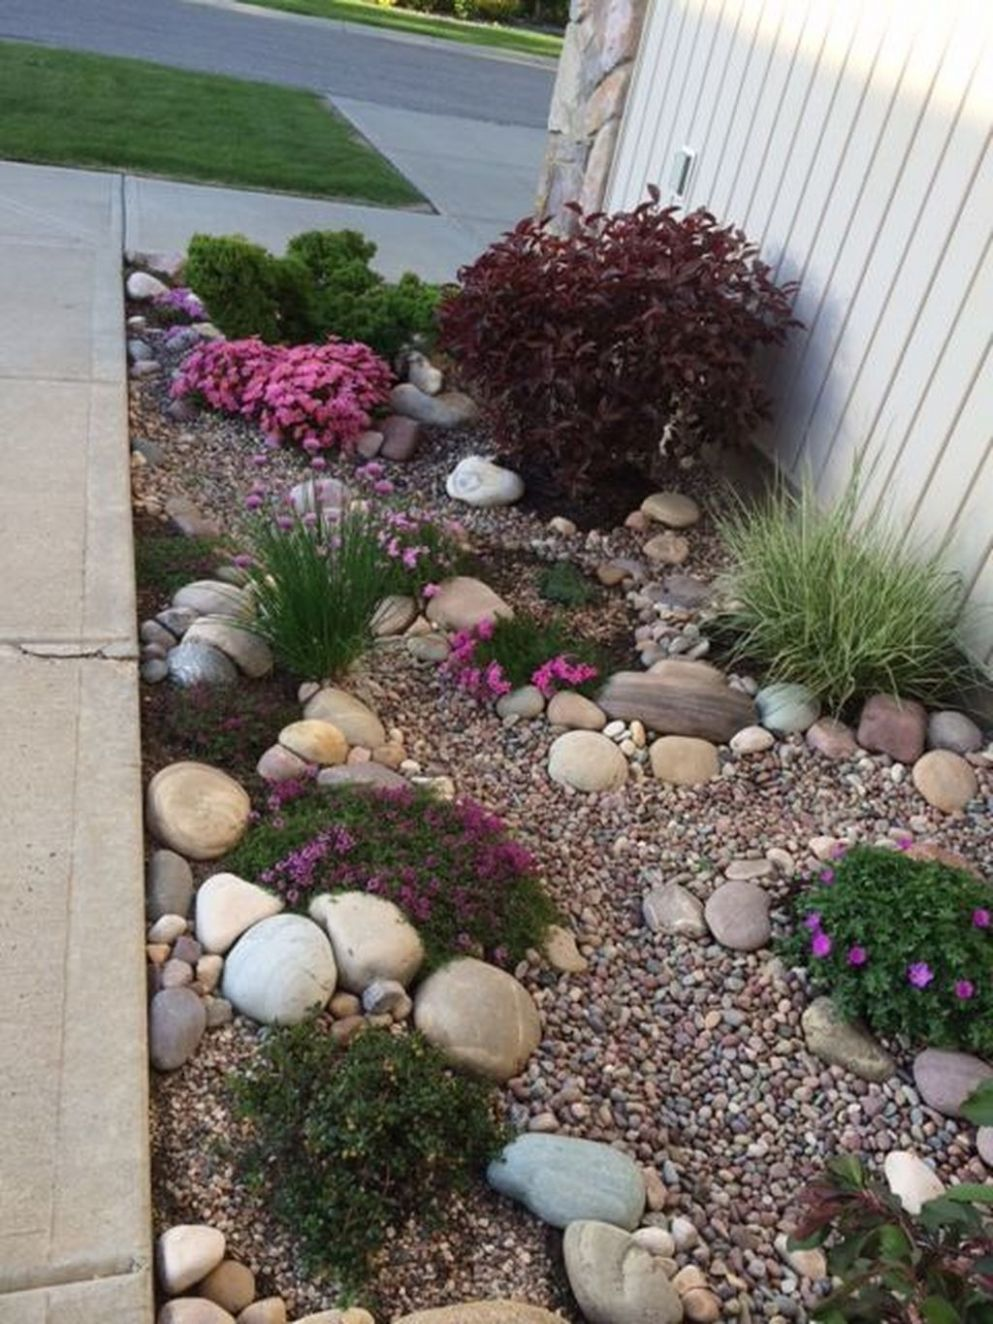 10 Pretty Rock Garden Ideas On A Budget (With images) | Rock ..